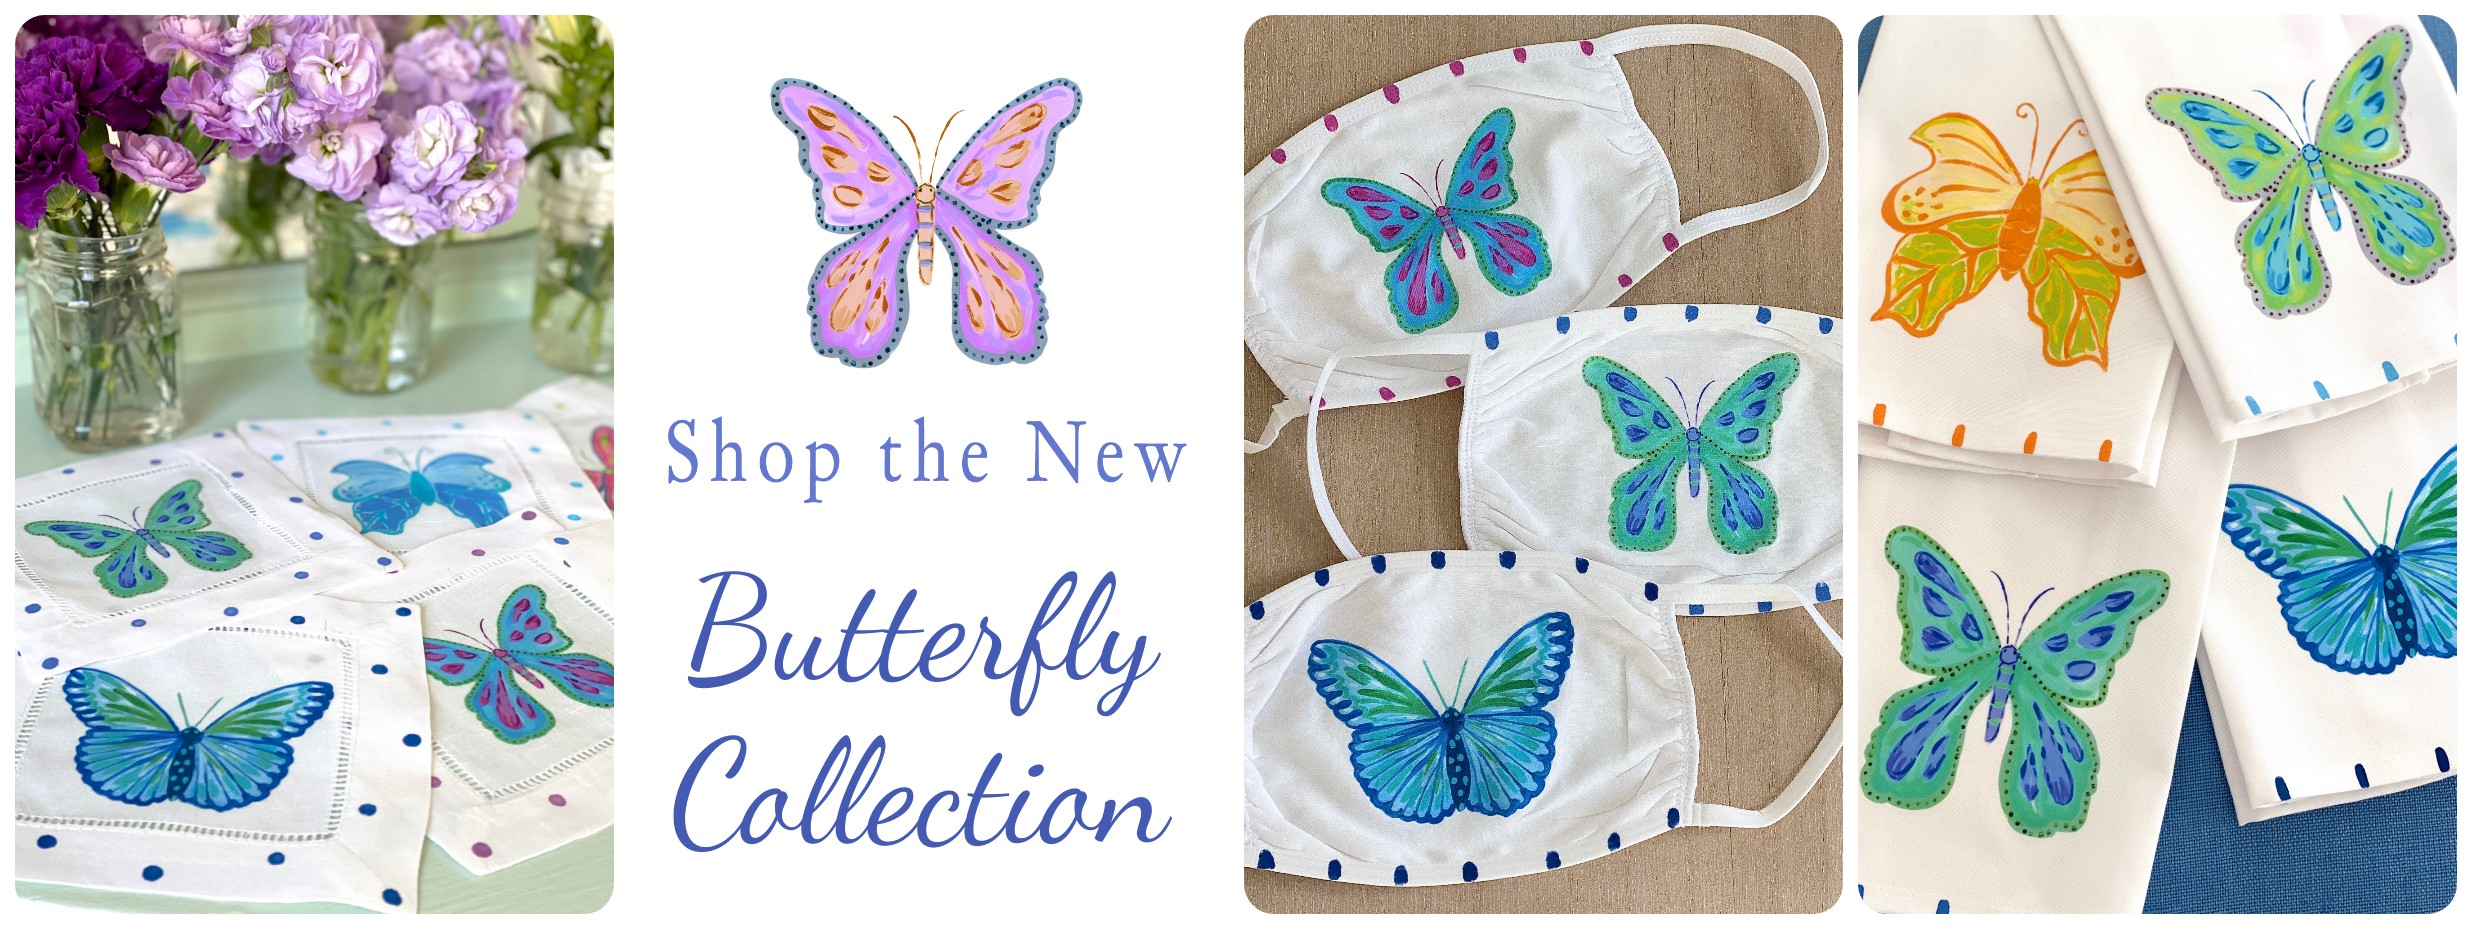 piccy butterfly collection 2